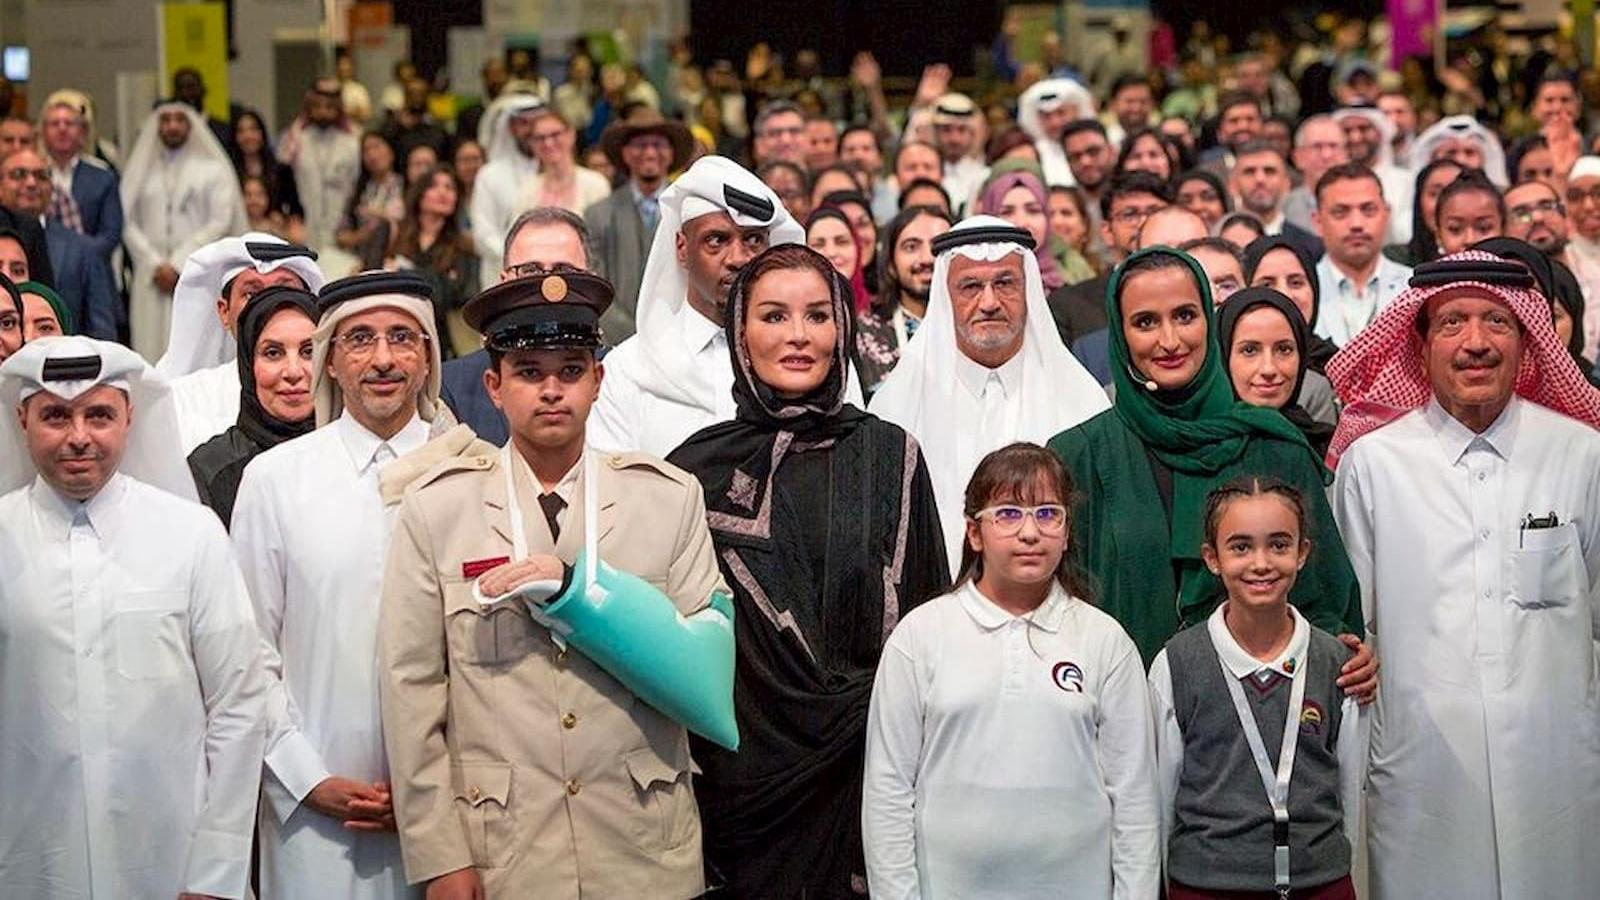 Qatar Foundation marks 25 years of excellence in education and research